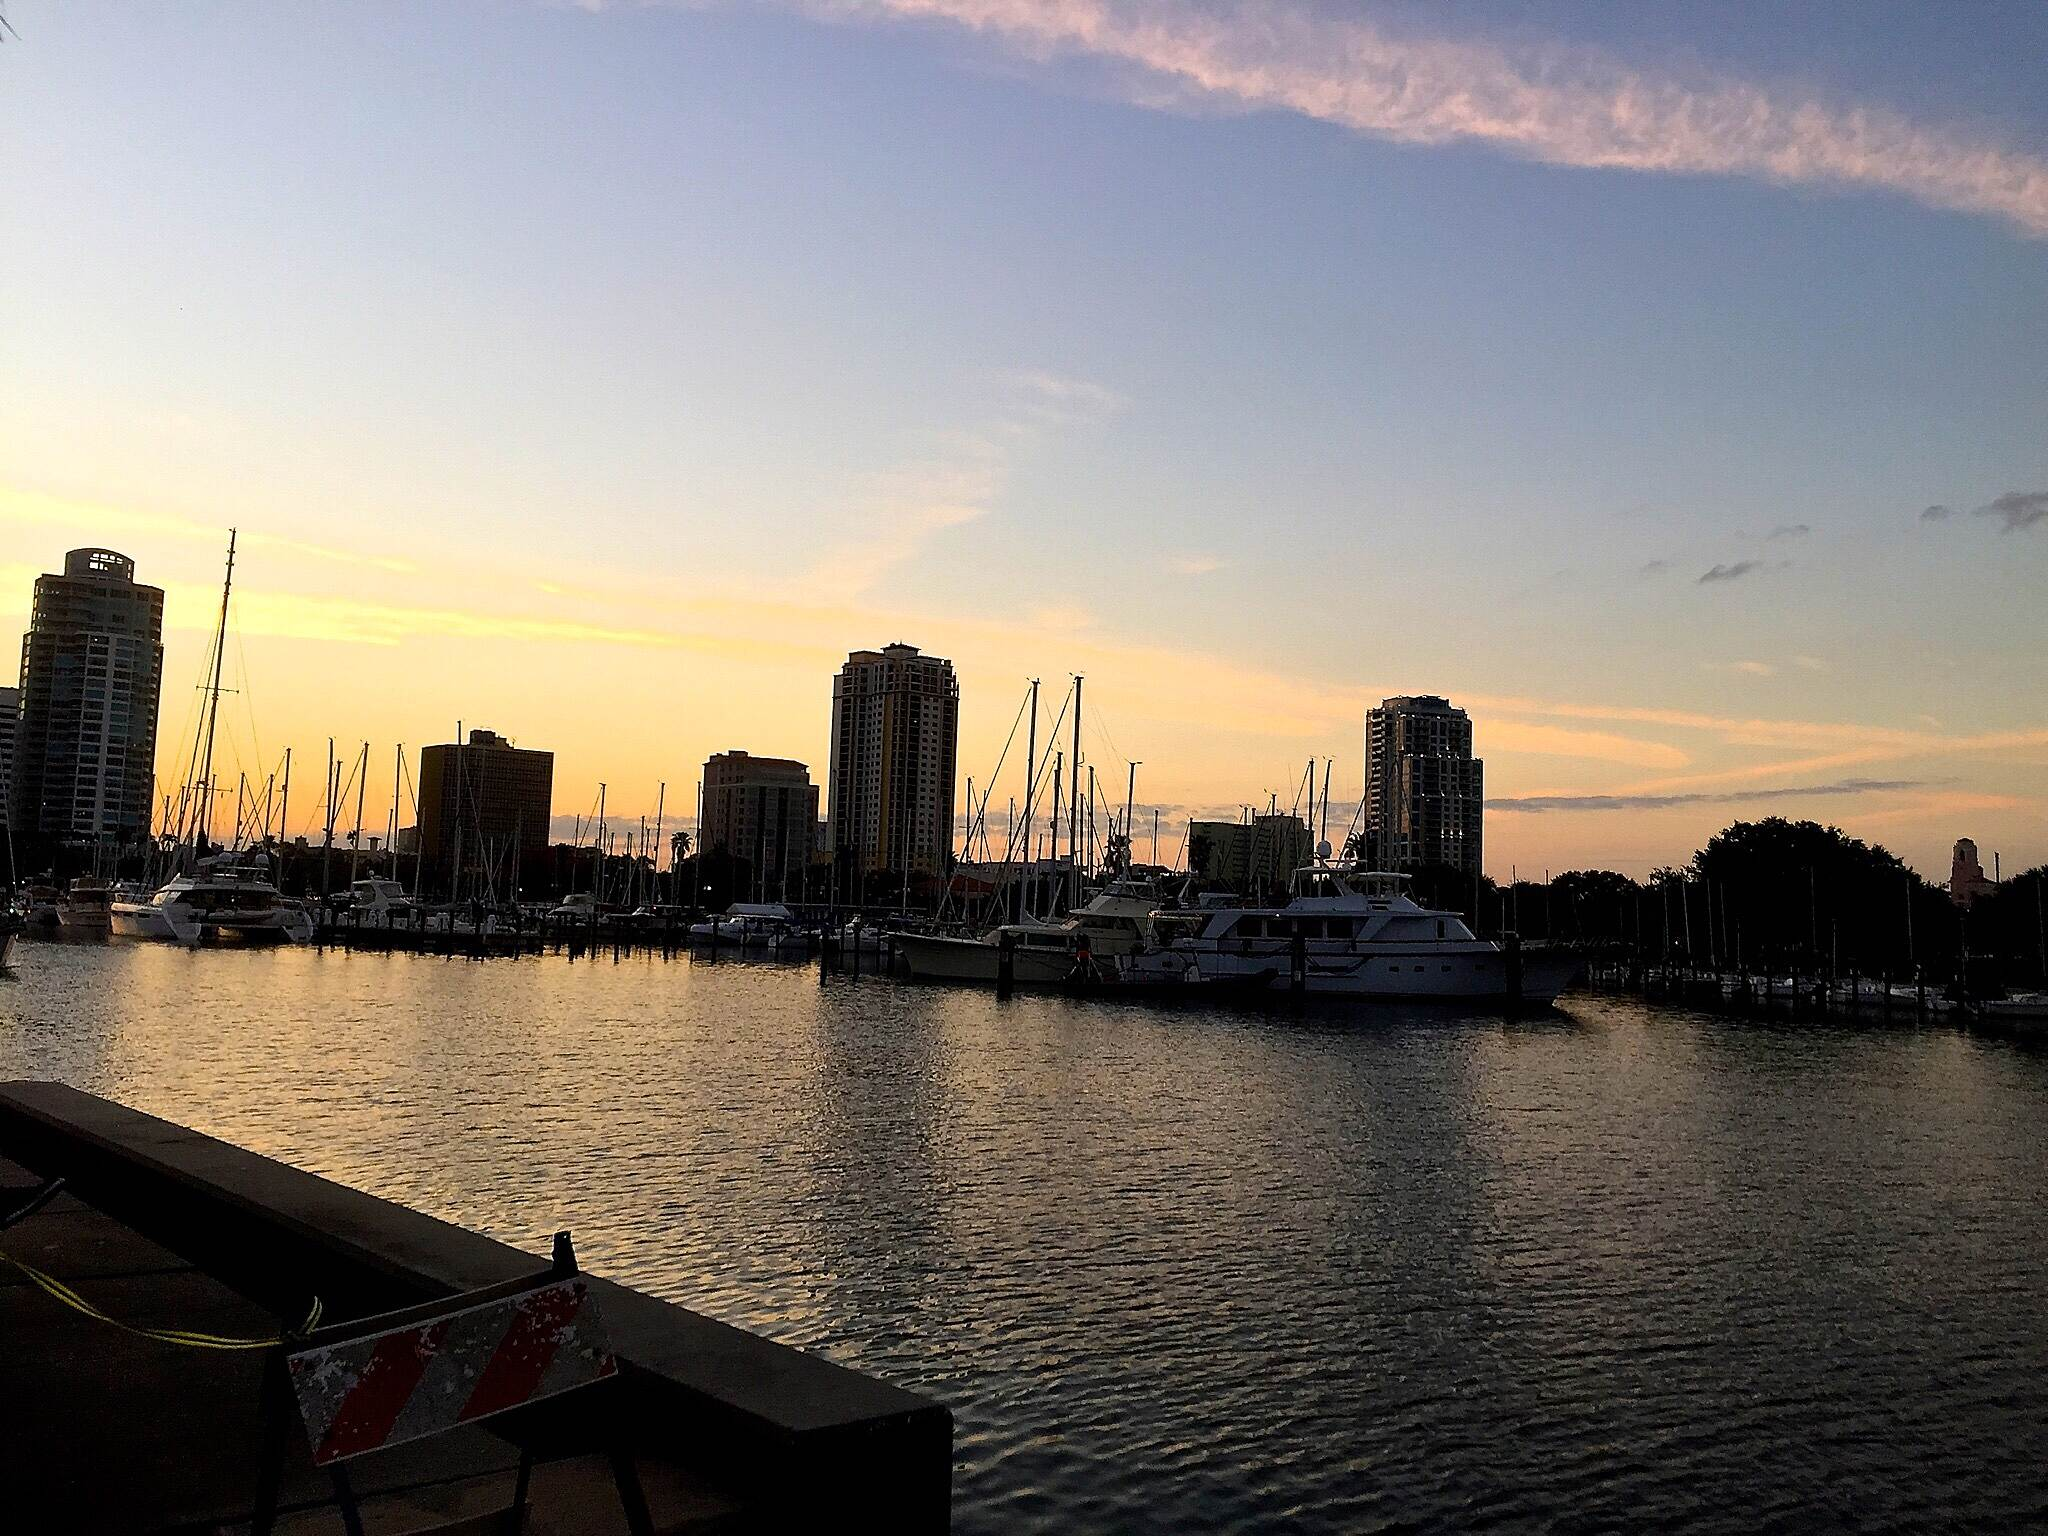 Fred Marquis Pinellas Trail Goes to water edge - Downtown St. Pete http://youtu.be/h2ur1gxIz3s